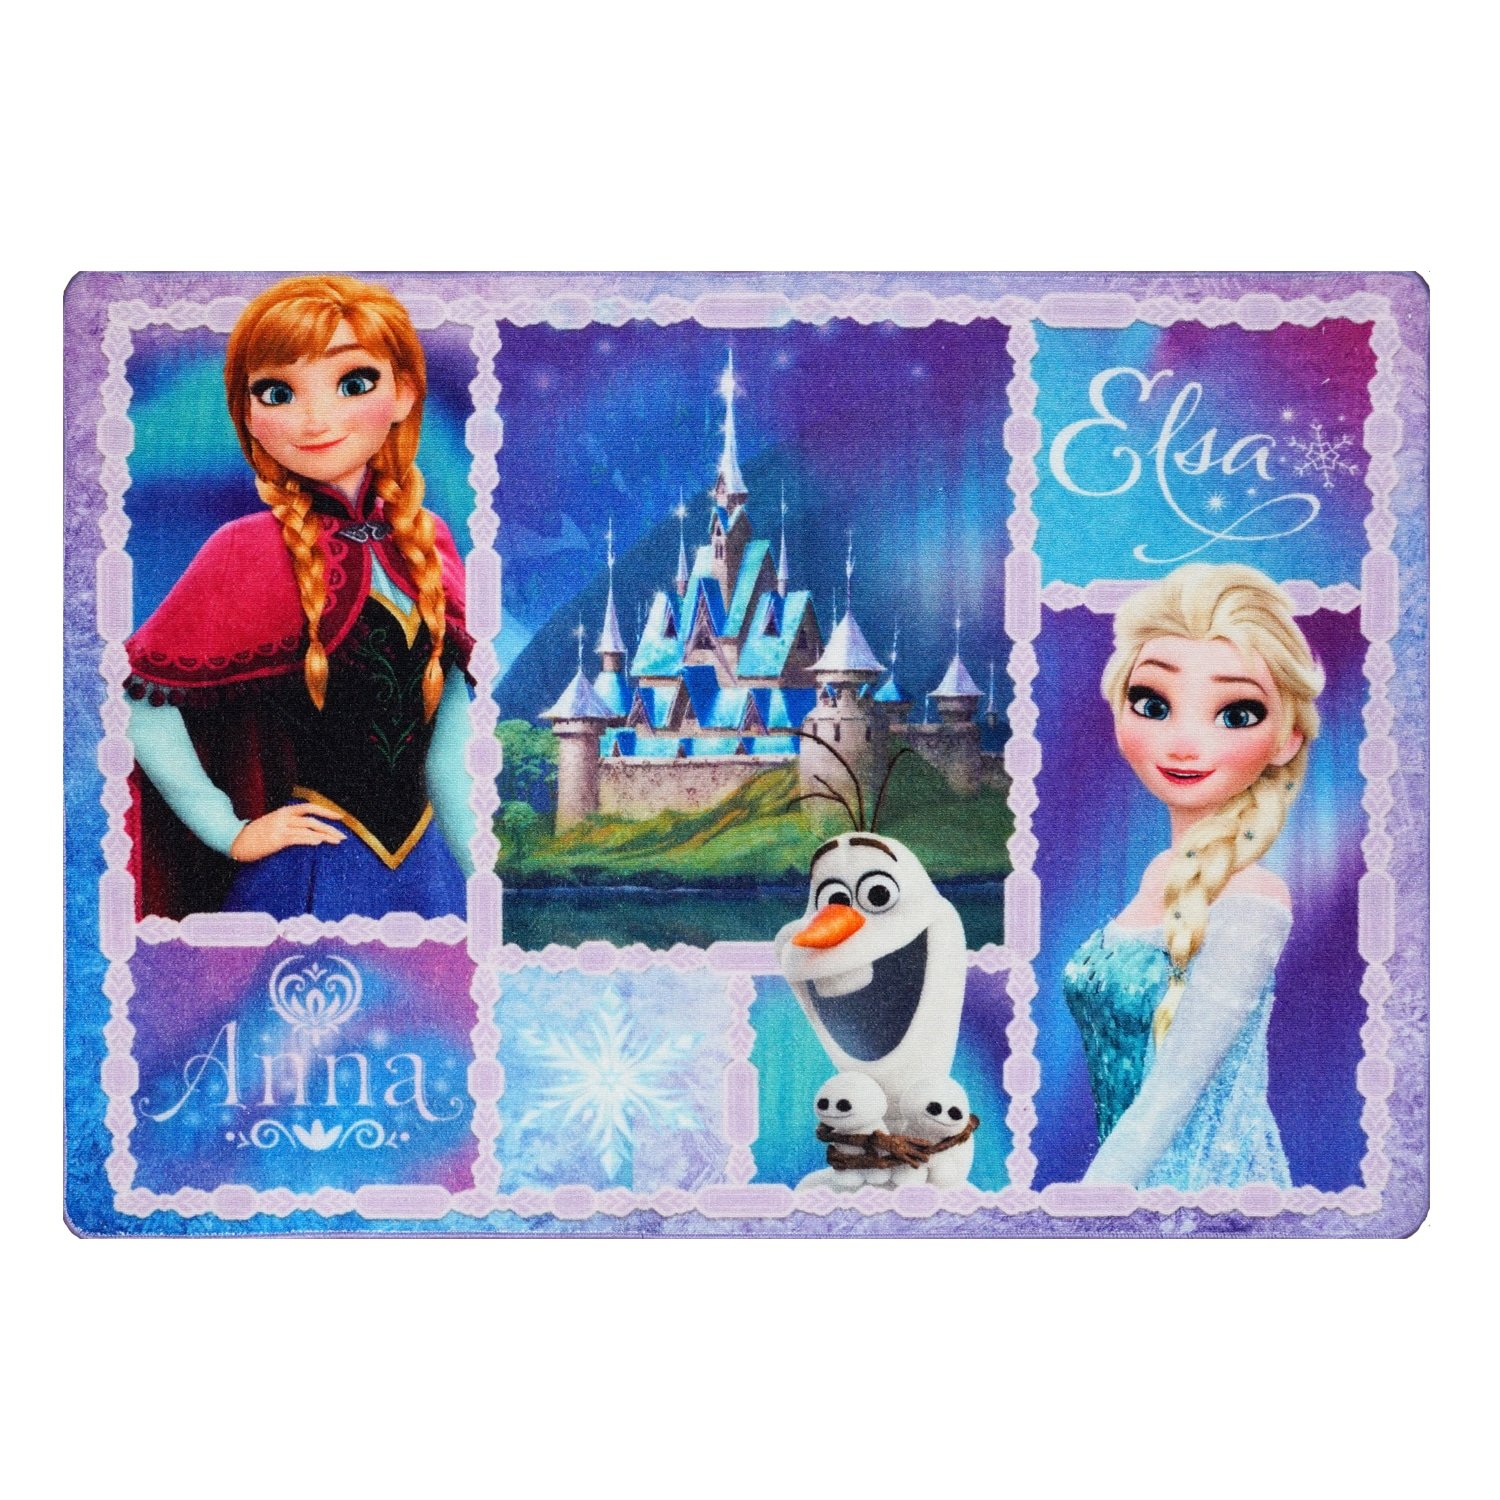 Ln 4'6 x 6'6 Kids Blue White Disney Frozen Theme Area Rug Rectangle, Indoor Purple White Disney's Themed Kid Bedroom Carpet Olaf Anna Elsa Princess Sisters Movie Cartoon Characters, Polyester